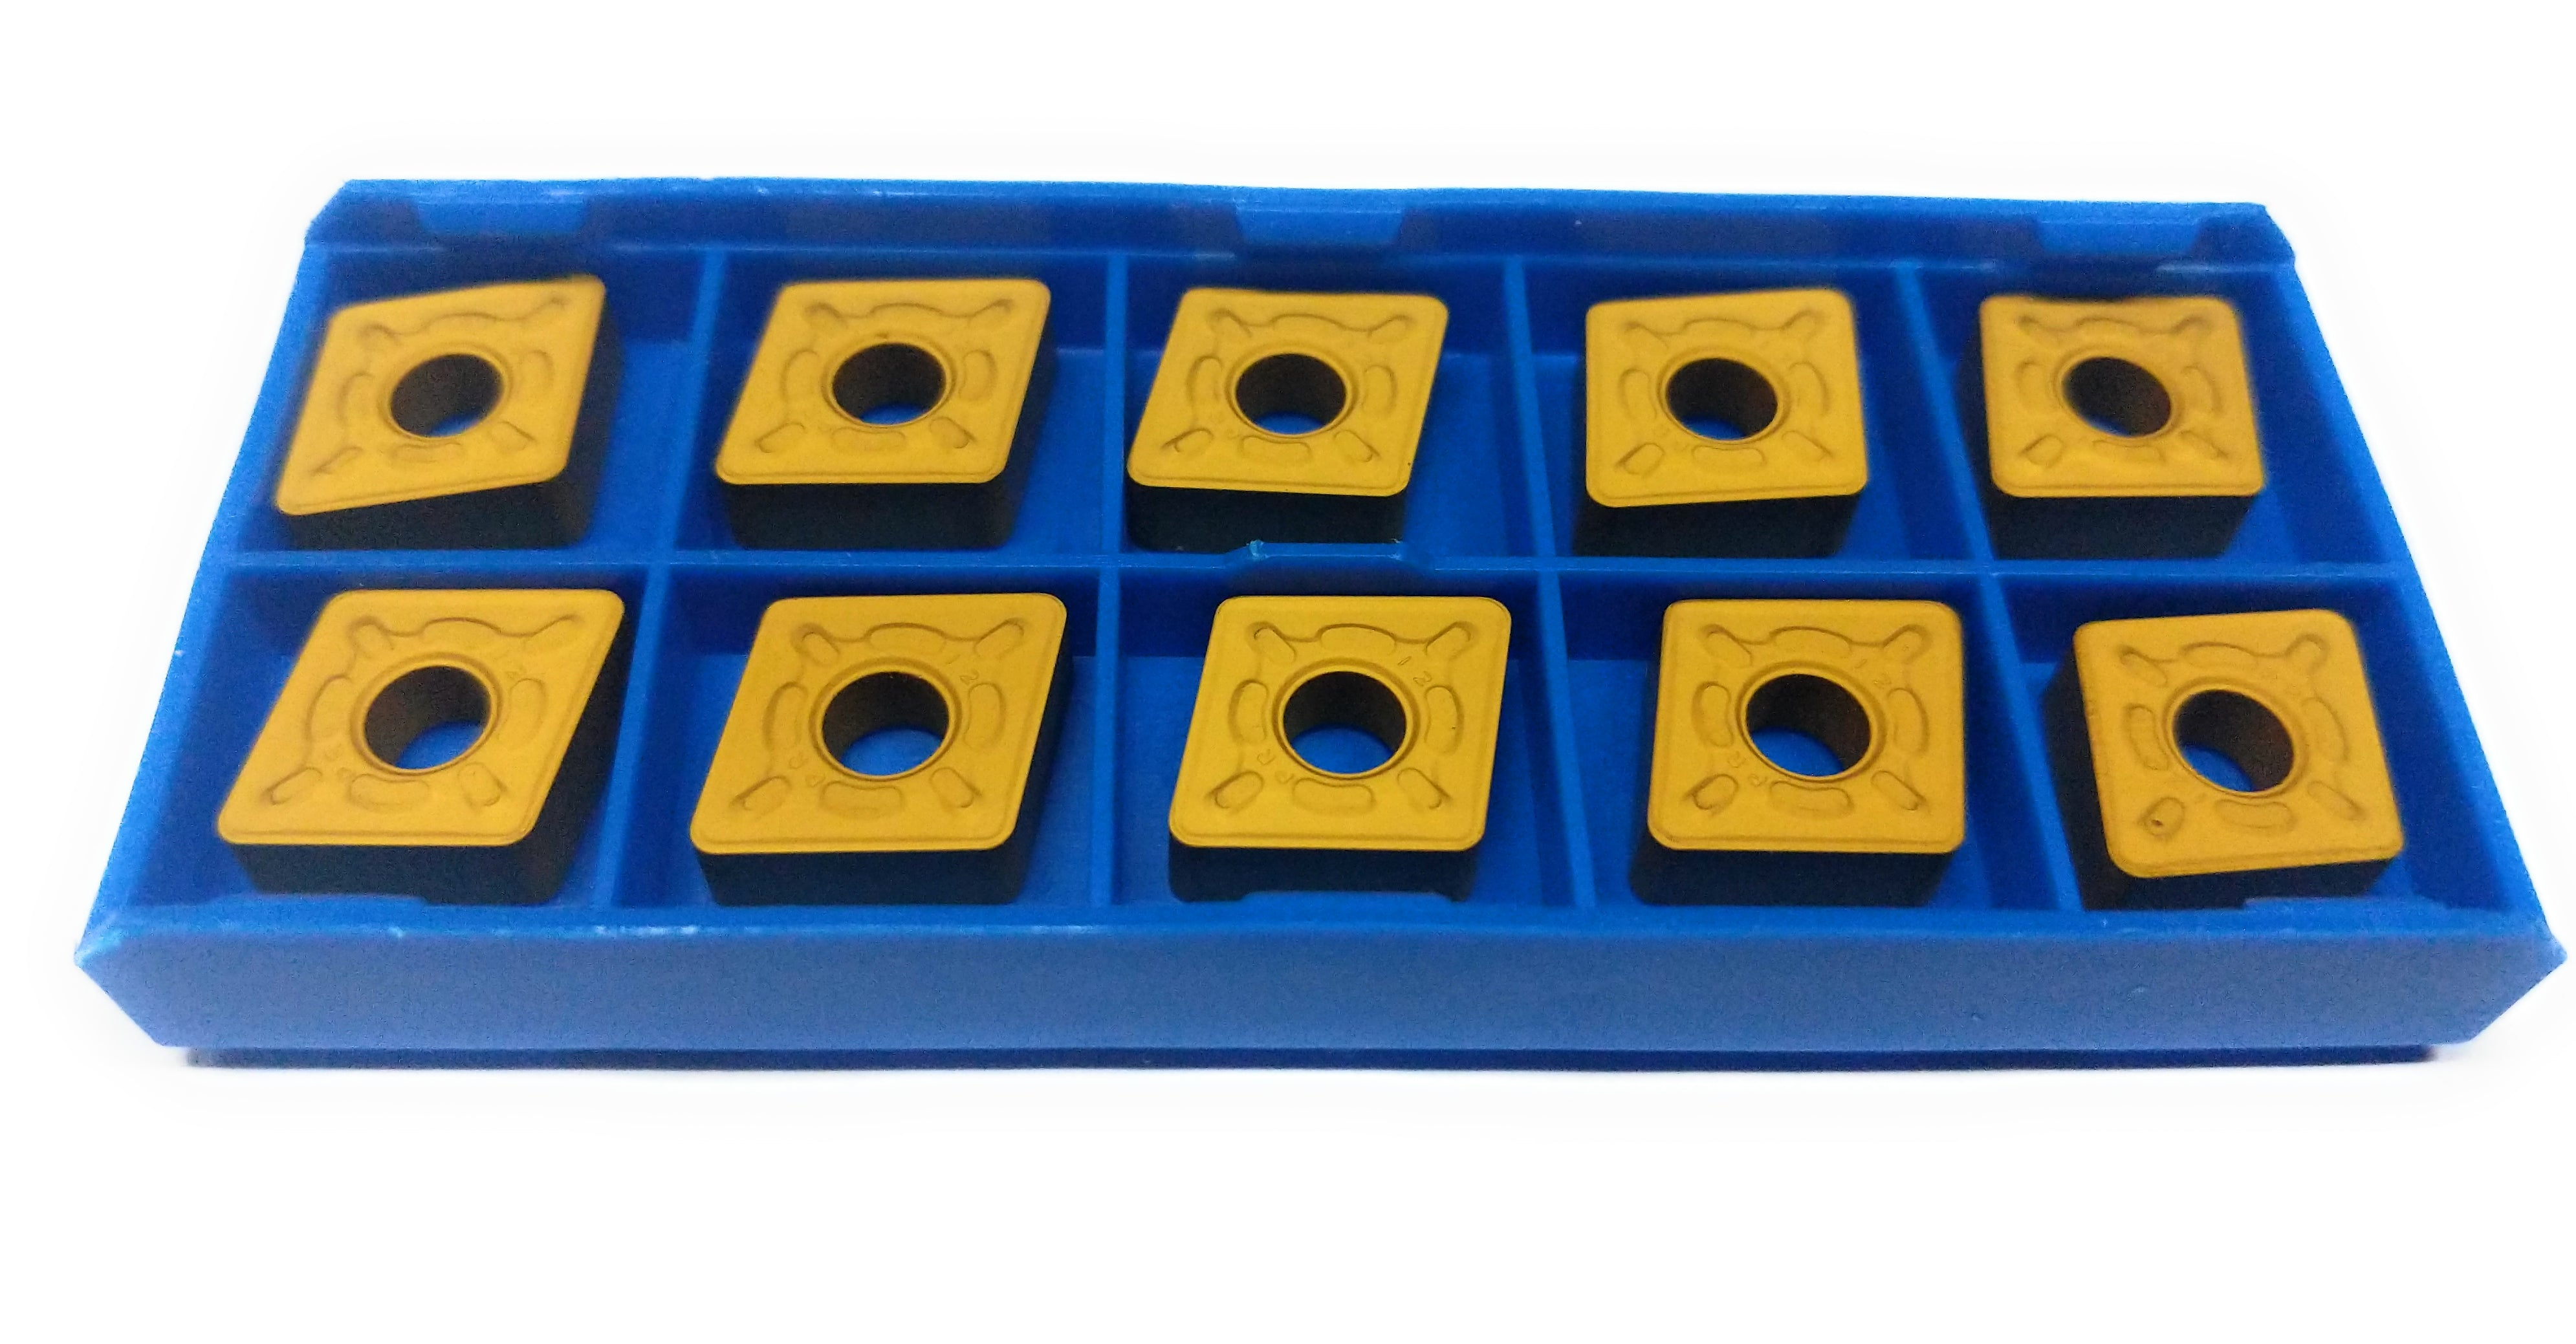 10 pcs RISHET TOOLS 20228 CNMG 433-PM 120408-PM Grade MT4020 CVD Coated High Performance Carbide Inserts for Steel